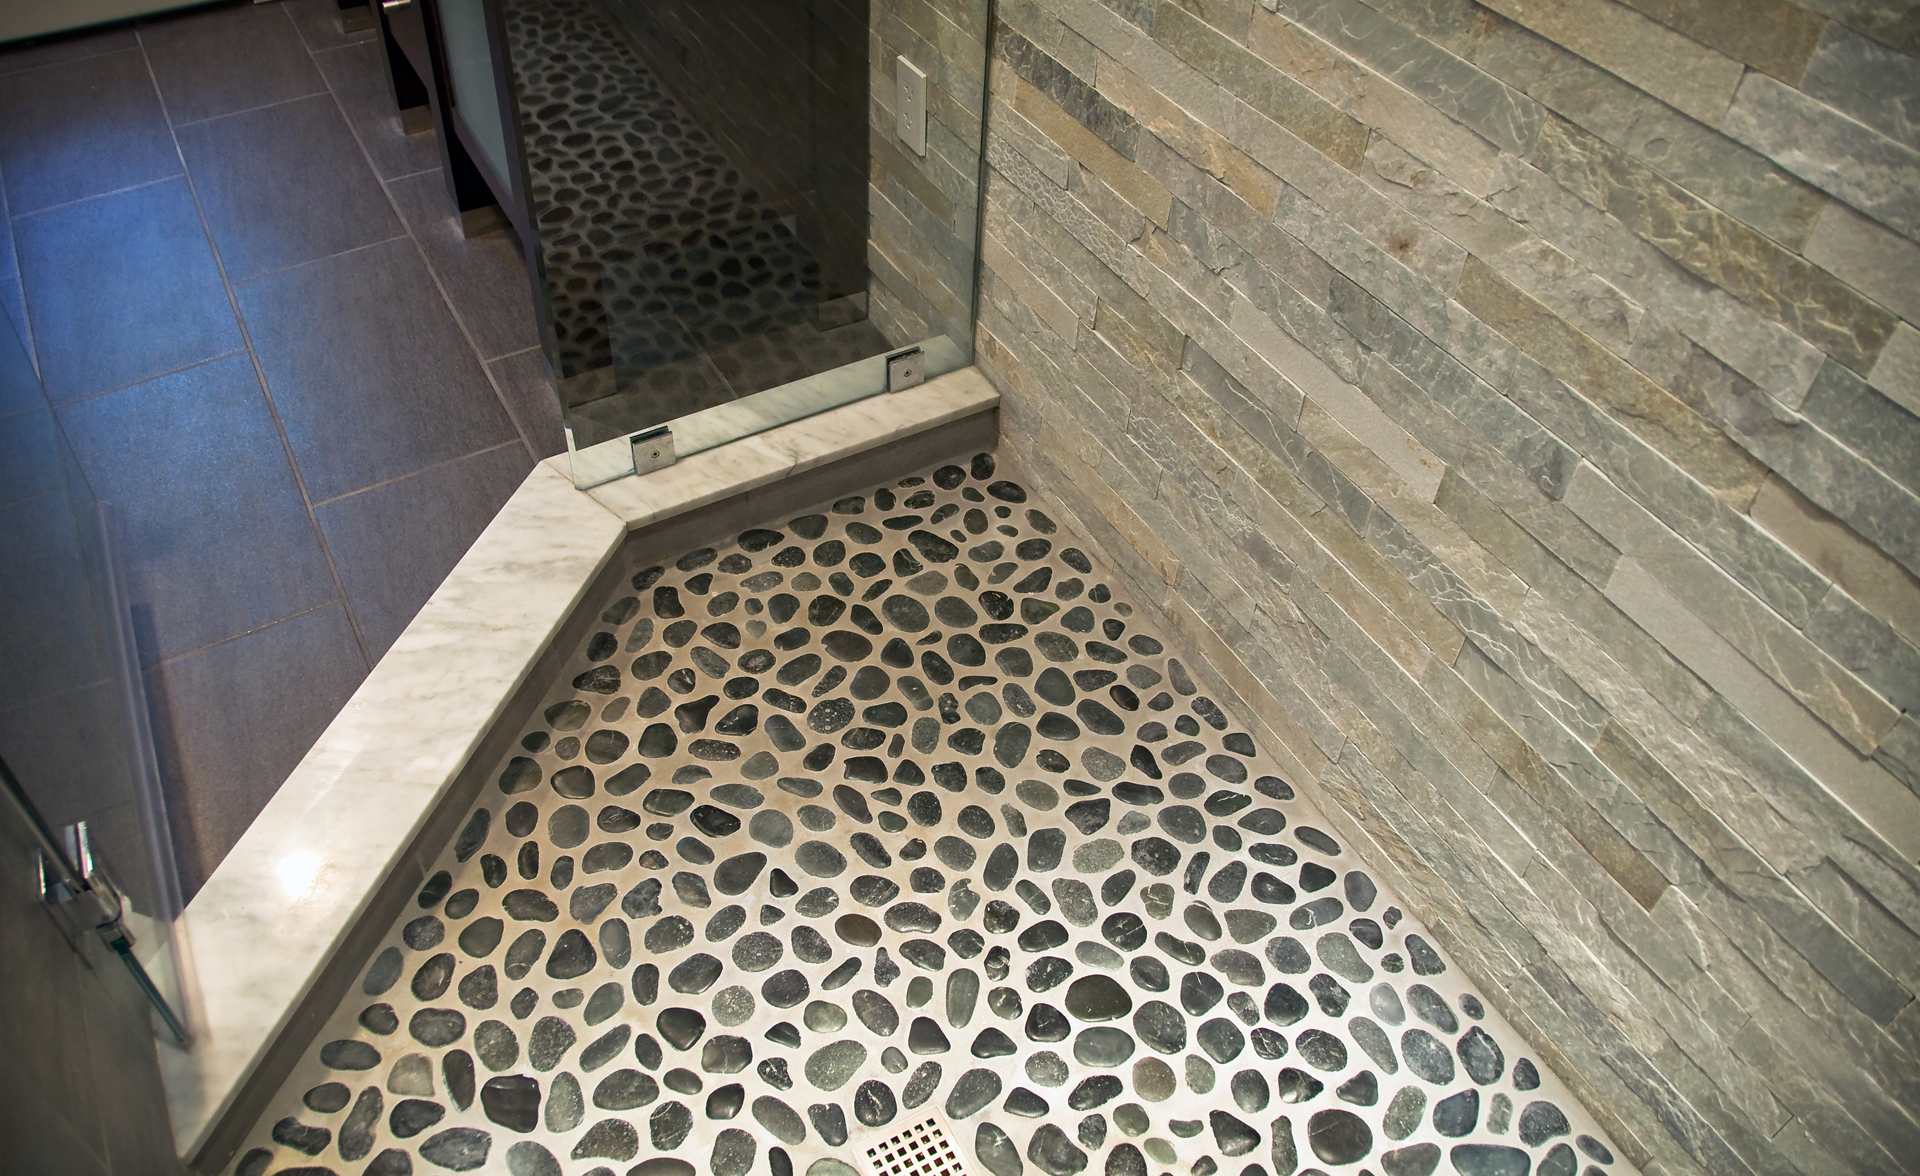 River Rock Bathroom Floor Tile